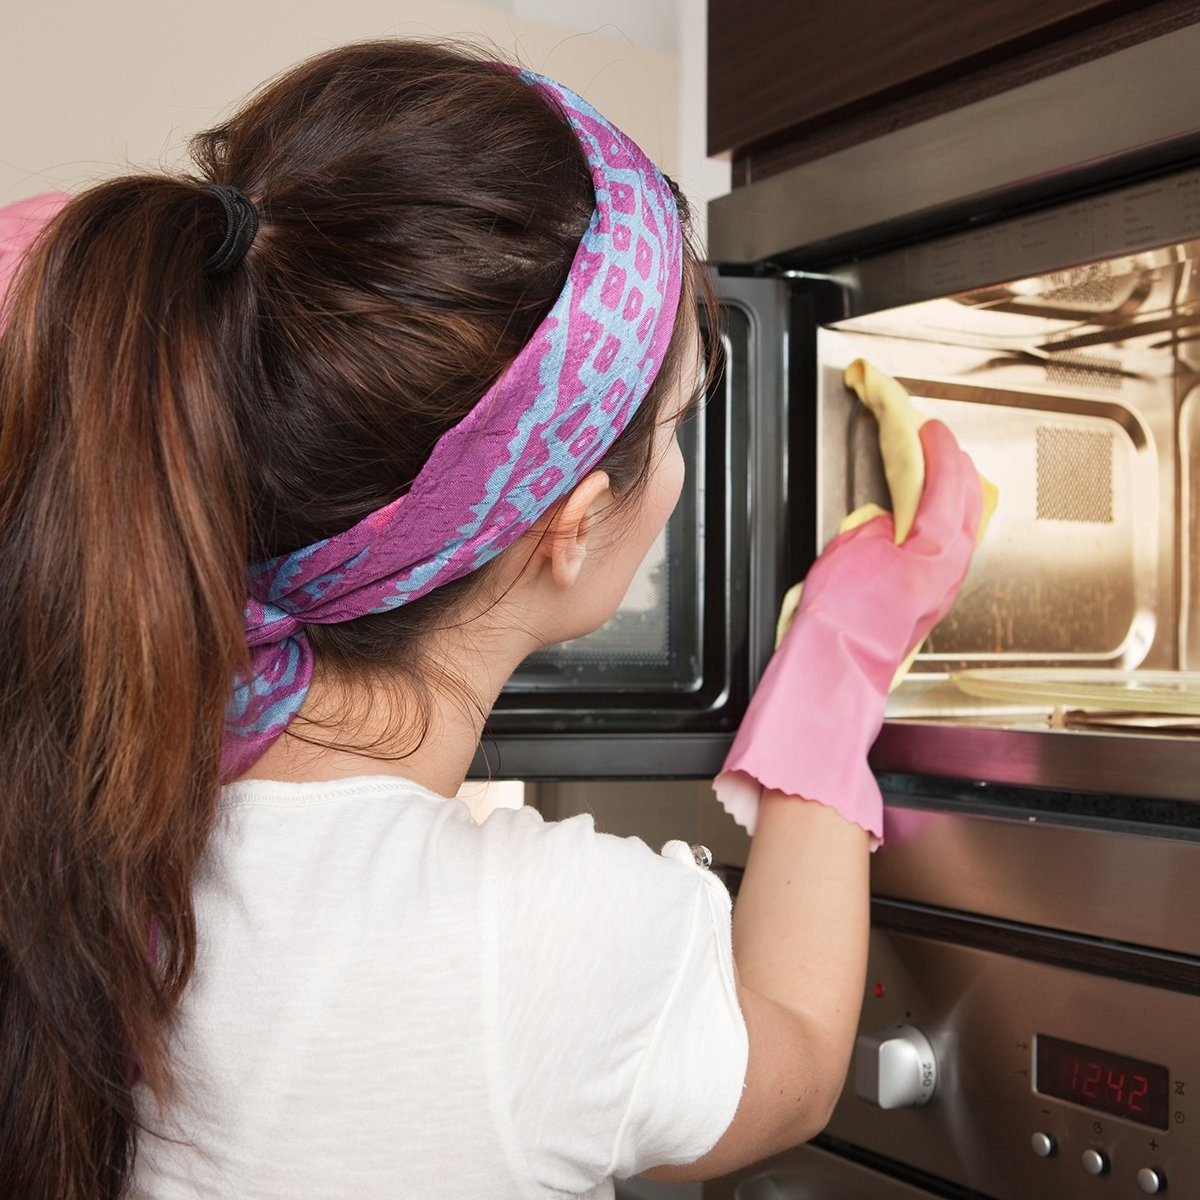 Girl cleaning oven in the kitchen